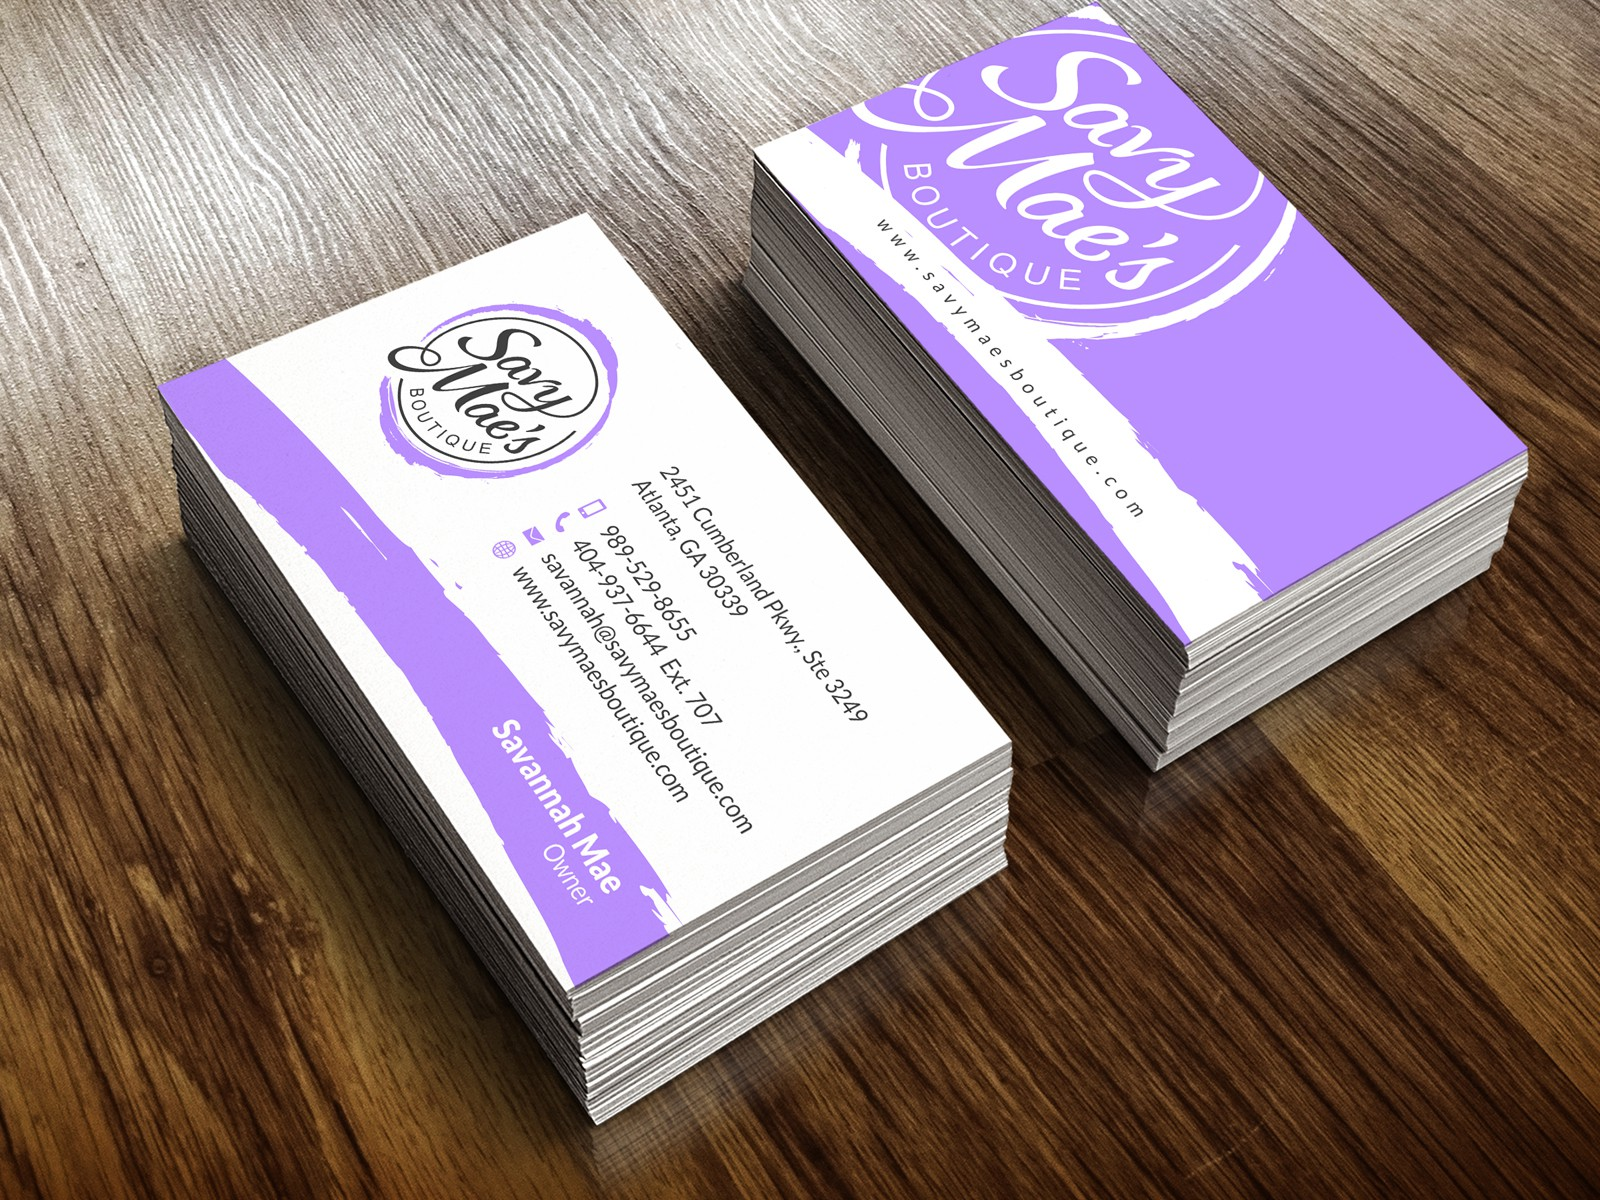 Create an attractive business card design for our clothing boutique: Savy Mae's Boutique